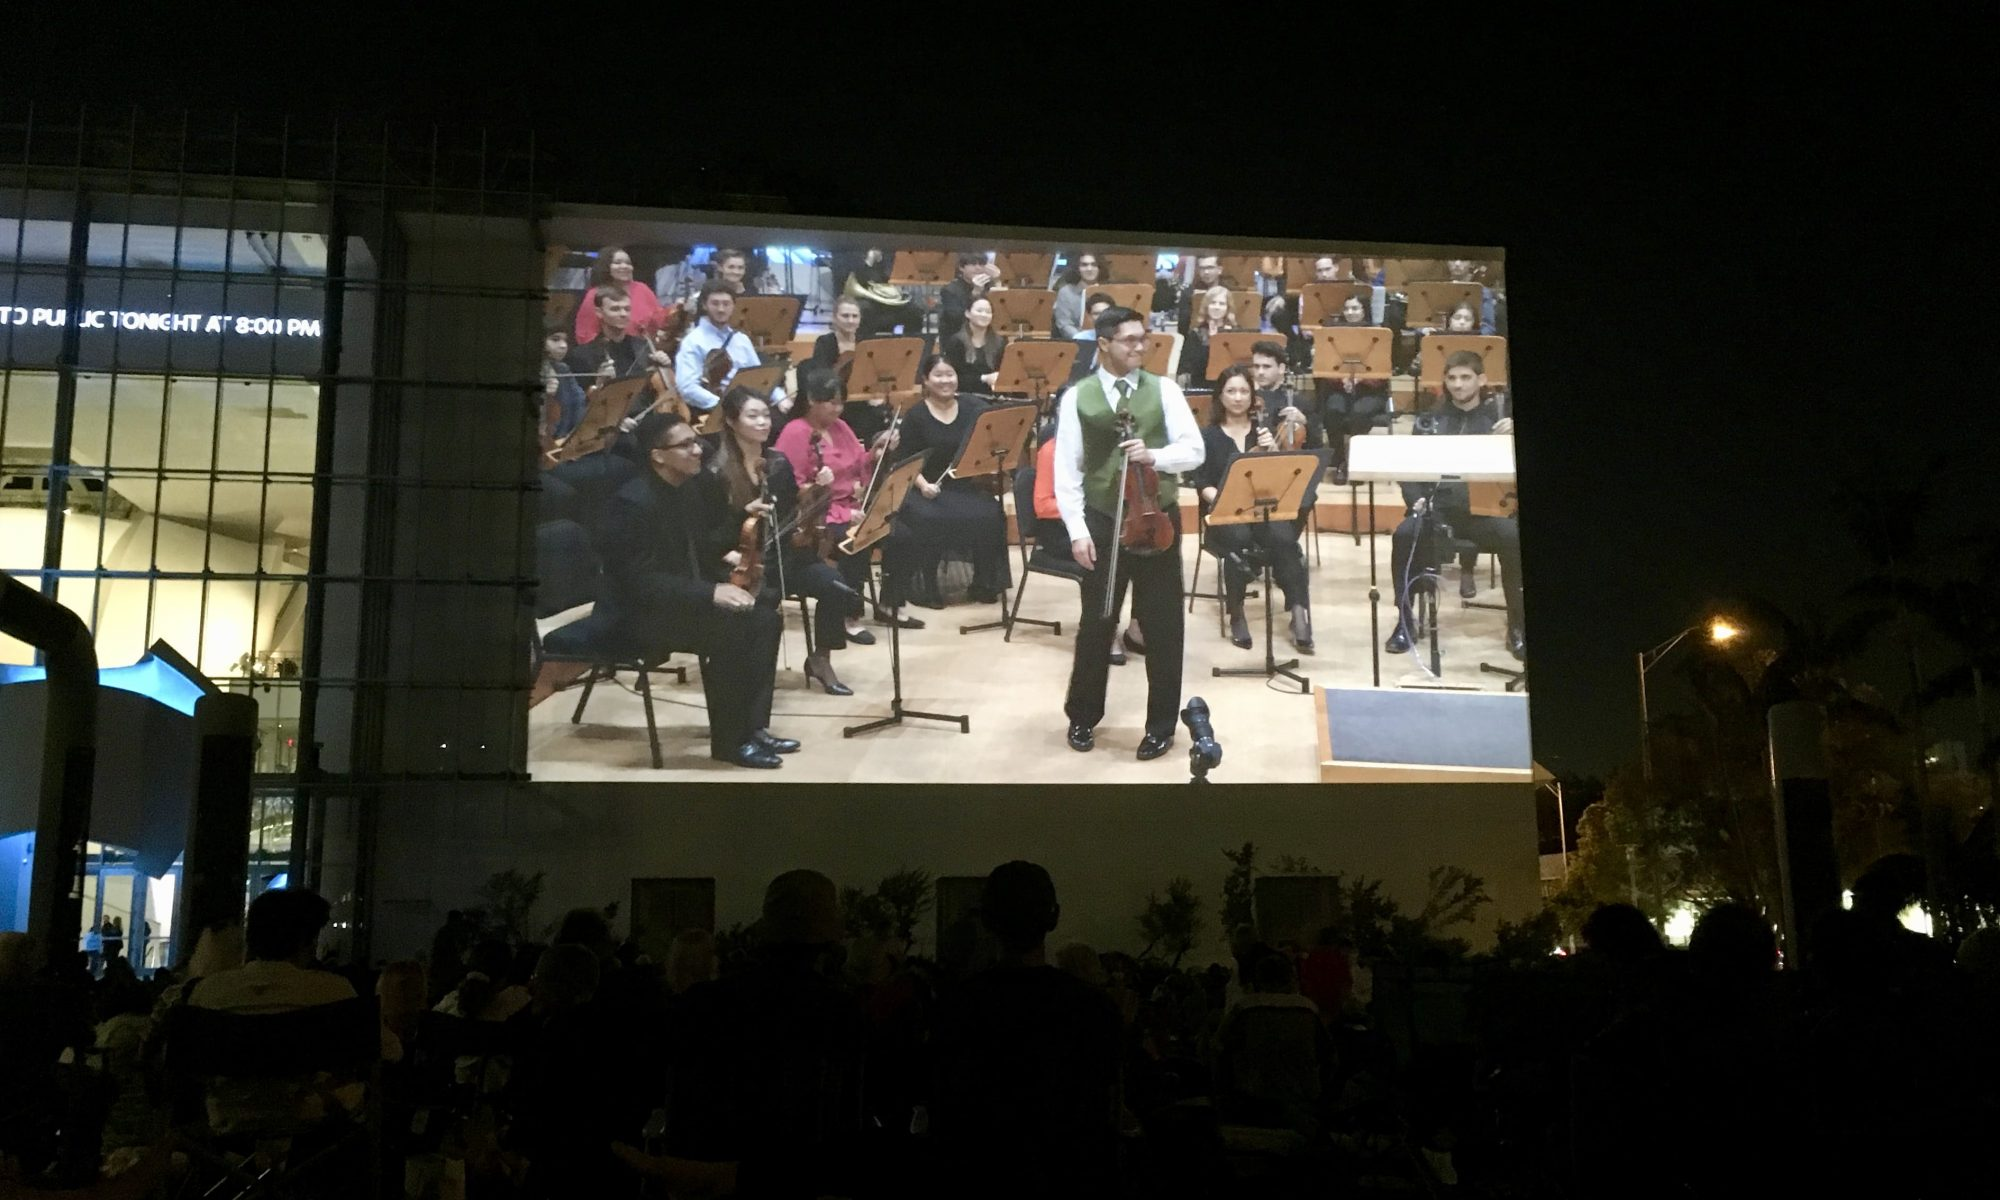 Violinist Matthew Hakkarainen performs with the New World Symphony, as seen on the outdoor Wallcast.